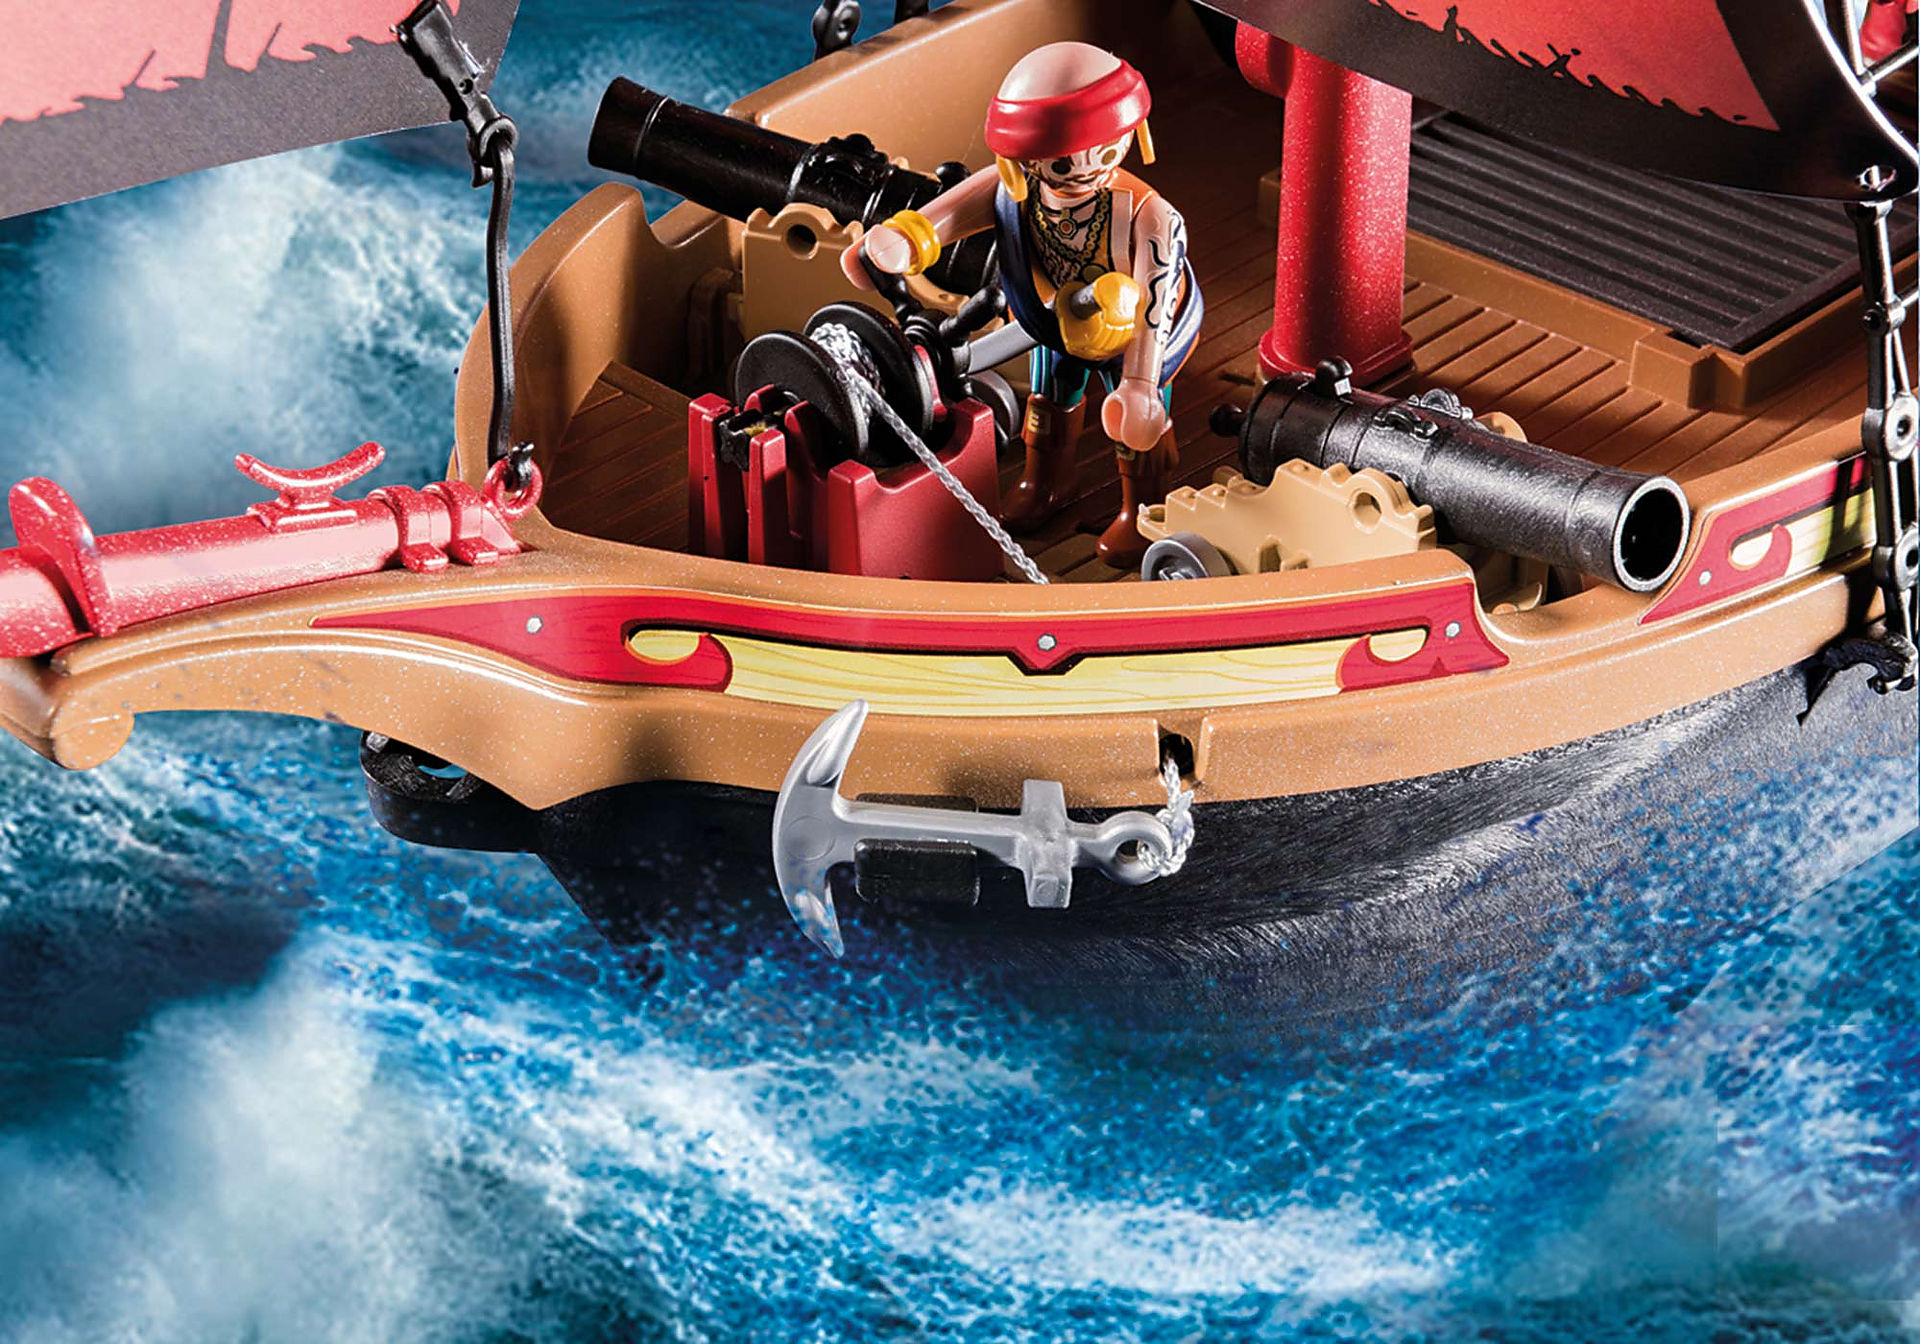 70411 Skull Pirate Ship zoom image8